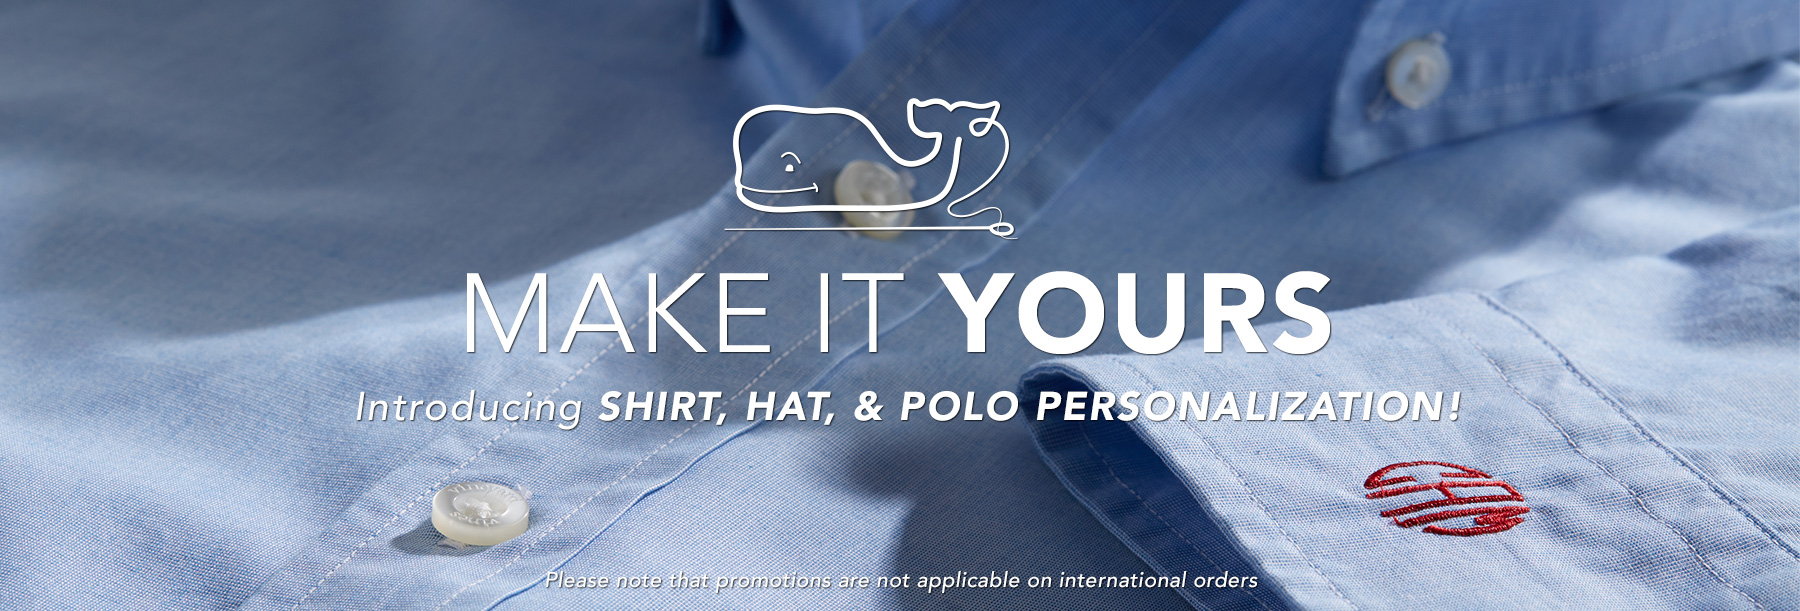 Make your mark. Introducing shirt, polo & hat personalization!